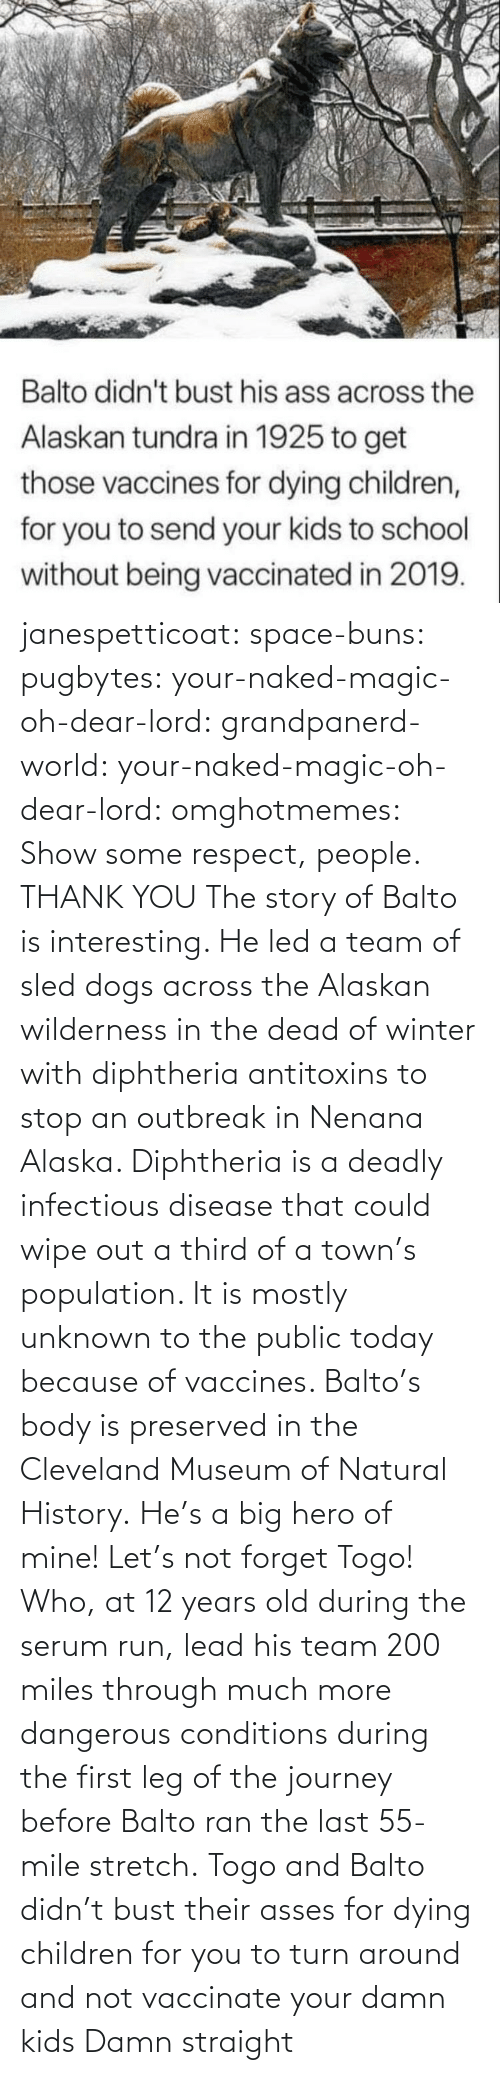 Of Mine: janespetticoat: space-buns:  pugbytes:   your-naked-magic-oh-dear-lord:  grandpanerd-world:   your-naked-magic-oh-dear-lord:  omghotmemes: Show some respect, people.  THANK YOU   The story of Balto is interesting. He led a team of sled dogs across the Alaskan wilderness in the dead of winter with diphtheria antitoxins to stop an outbreak in Nenana Alaska. Diphtheria is a deadly infectious disease that could wipe out a third of a town's population. It is mostly unknown to the public today because of vaccines. Balto's body is preserved in the Cleveland Museum of Natural History.   He's a big hero of mine!   Let's not forget Togo! Who, at 12 years old during the serum run, lead his team 200 miles through much more dangerous conditions during the first leg of the journey before Balto ran the last 55-mile stretch.   Togo and Balto didn't bust their asses for dying children for you to turn around and not vaccinate your damn kids    Damn straight